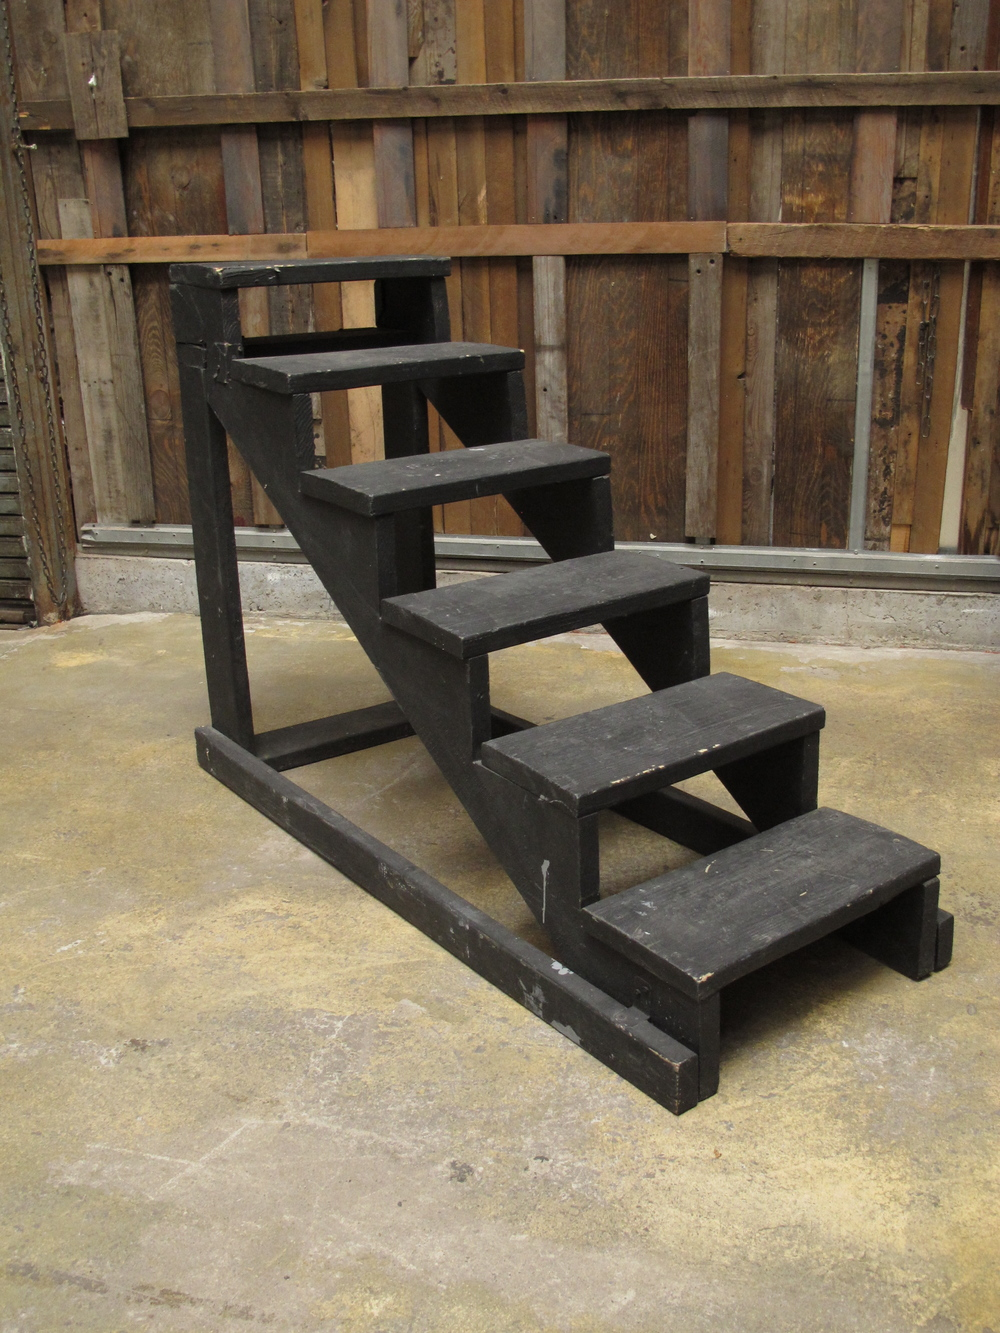 lack wood 6-step stairs $275